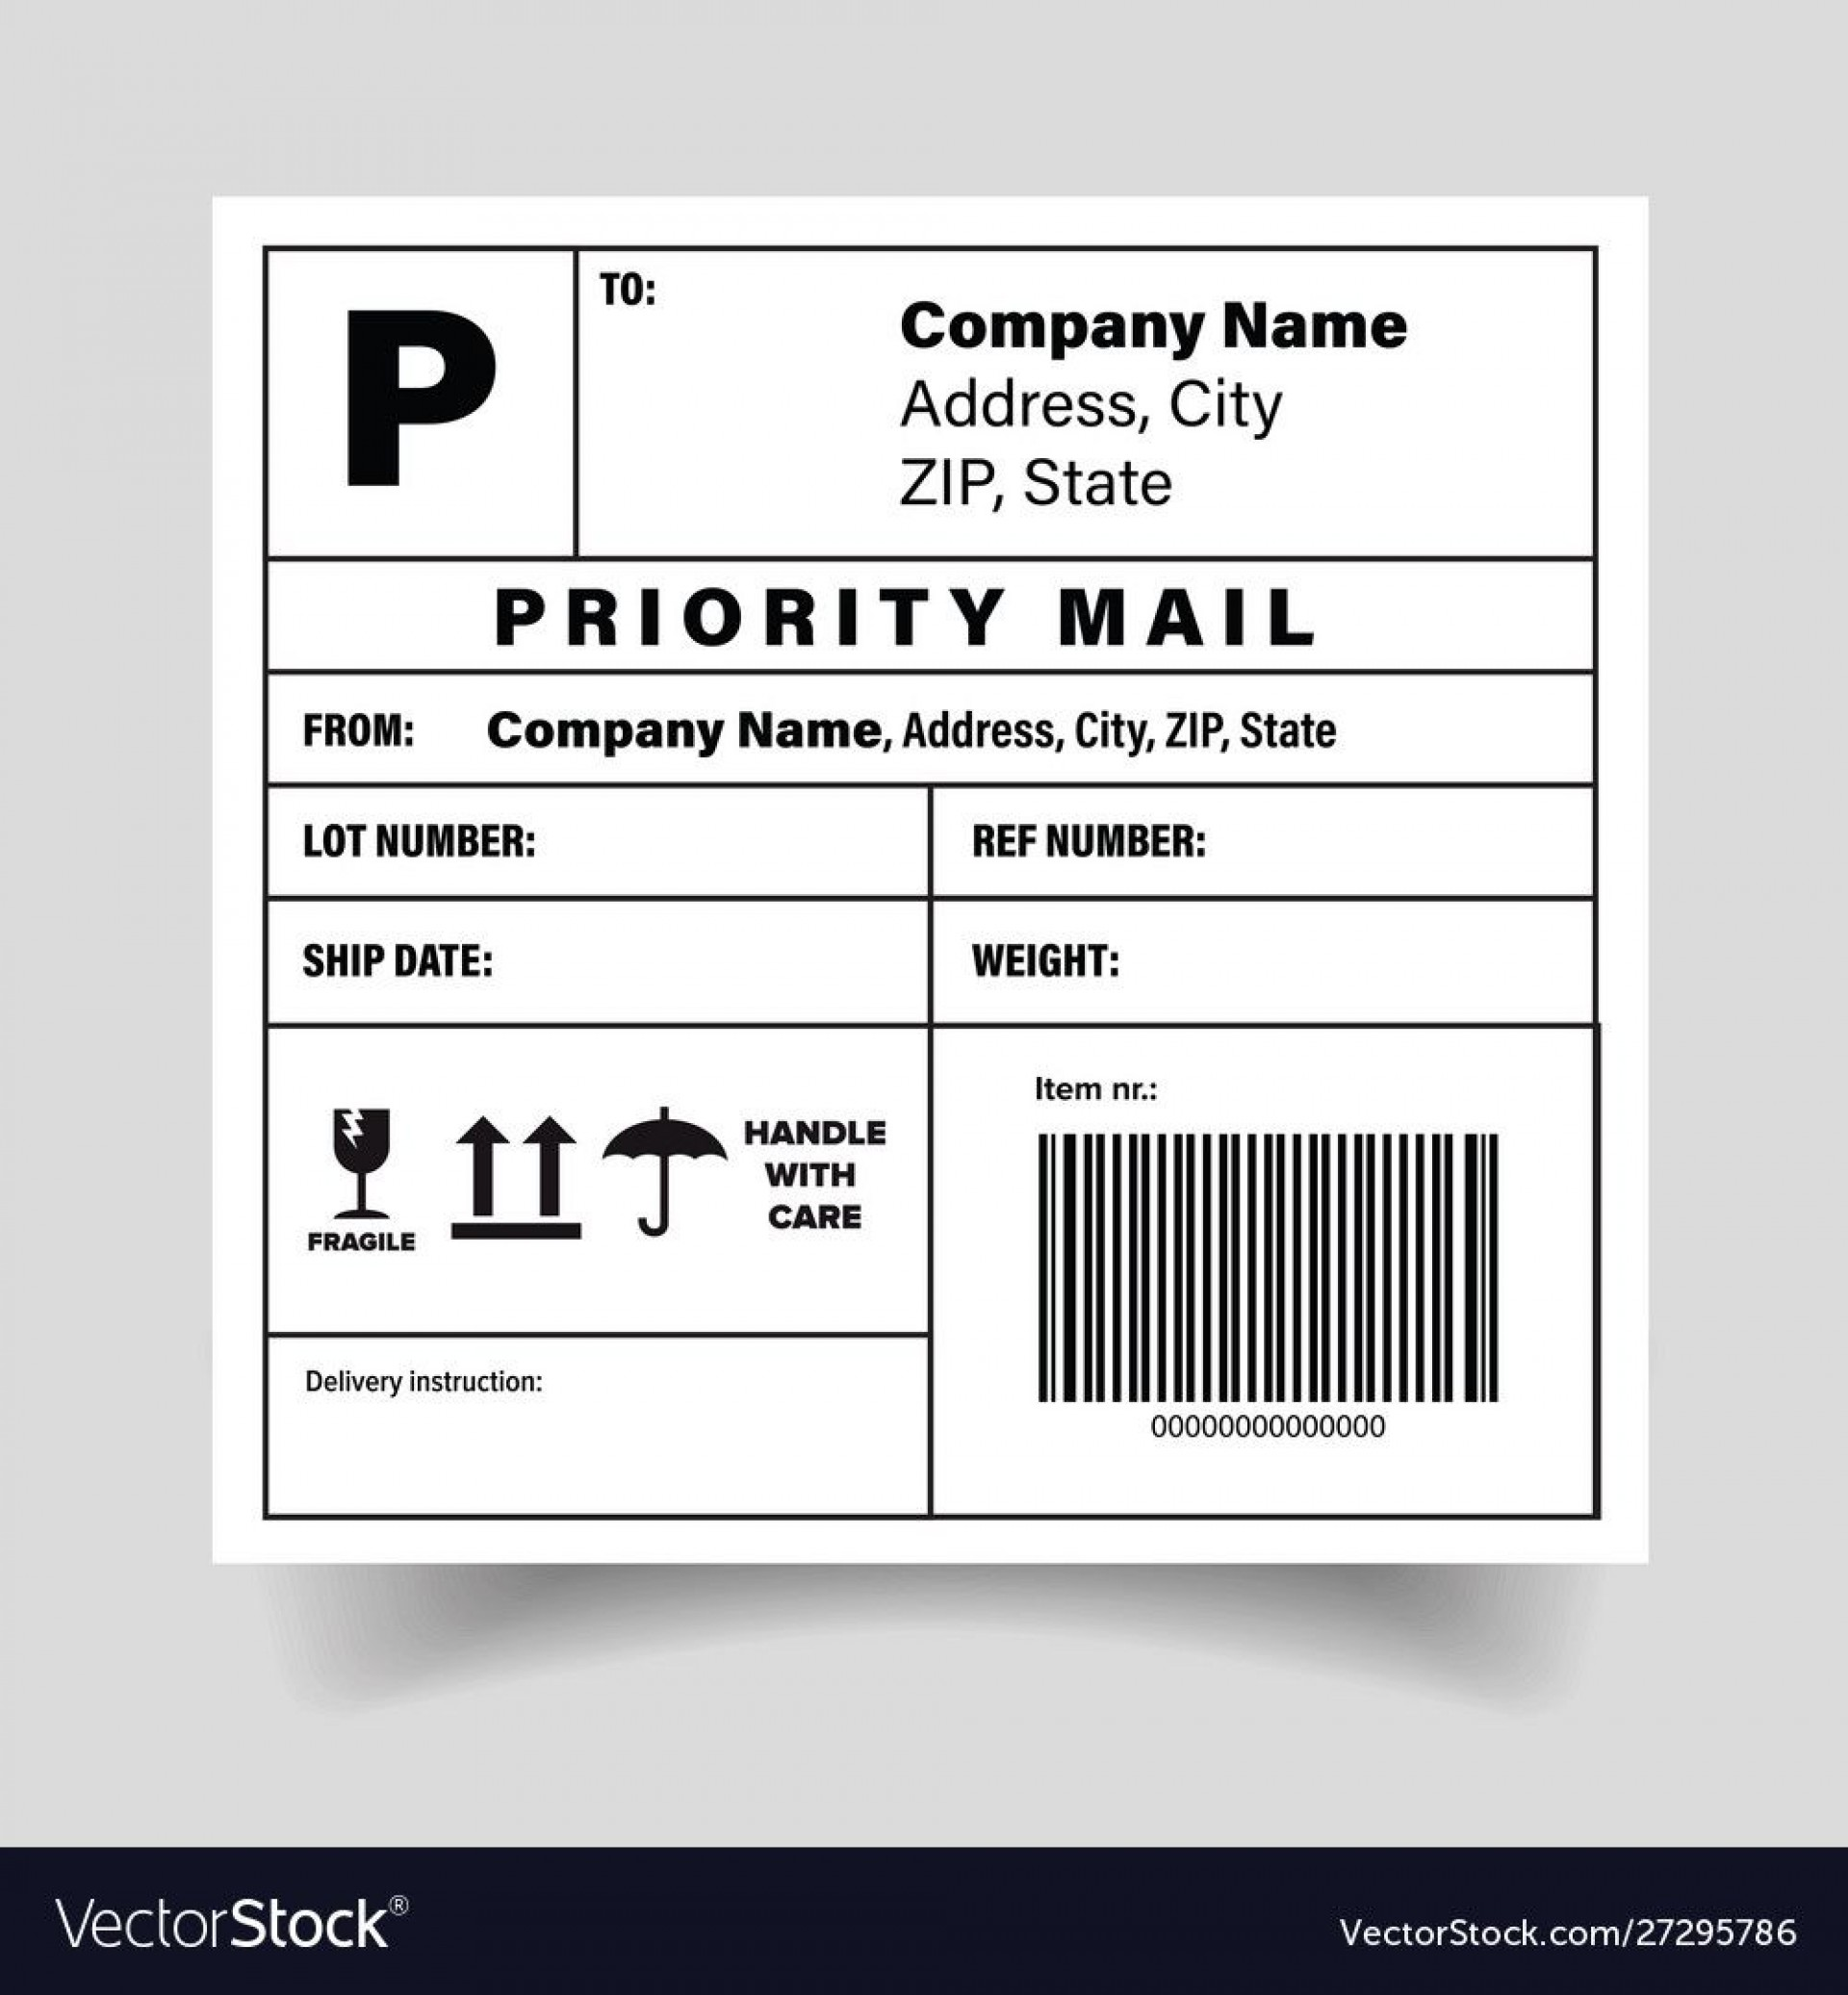 009 Stunning Free Mail Label Template High Resolution  Printable Addres 1 X 2 5 8 For Word Download1920